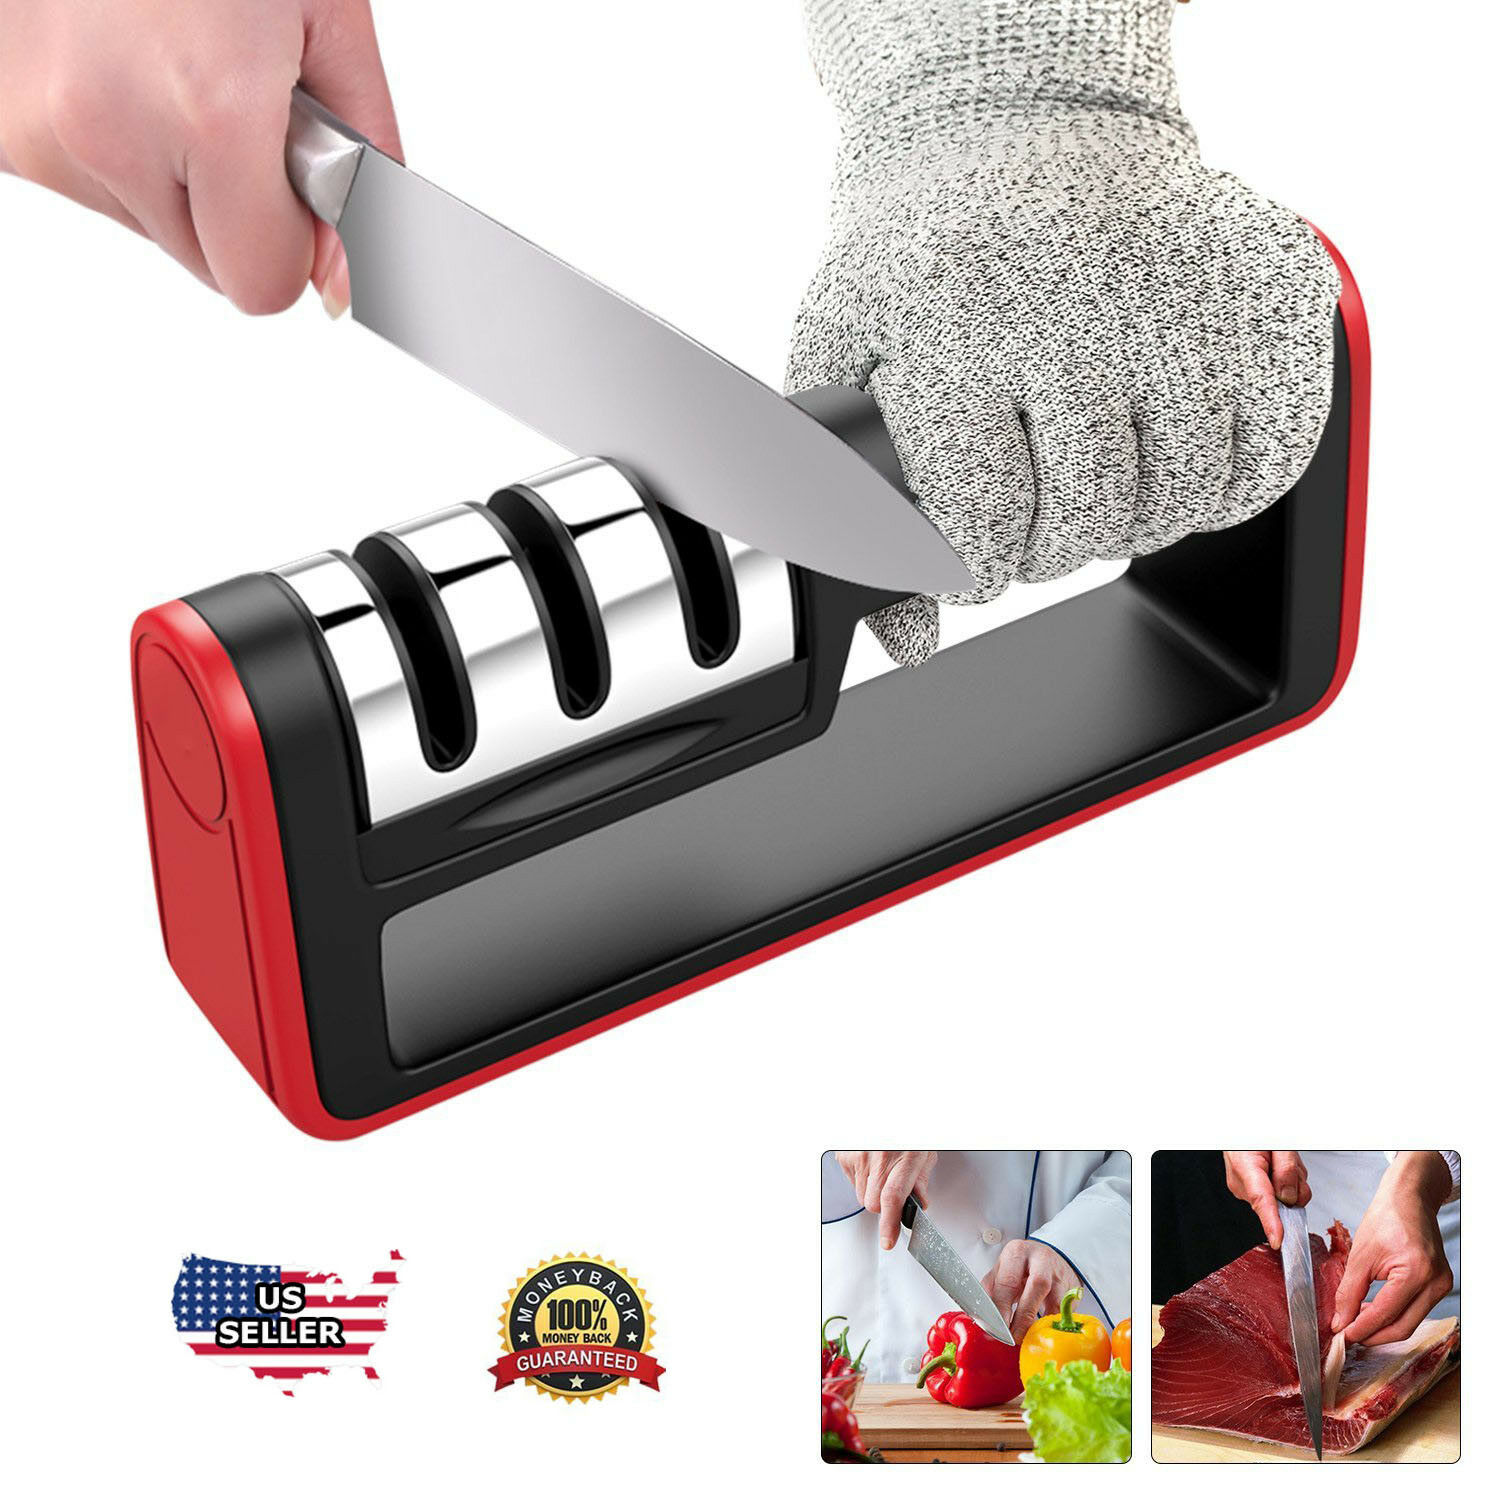 KNIFE SHARPENER Professional Ceramic Tungsten Kitchen Sharpening System Tool